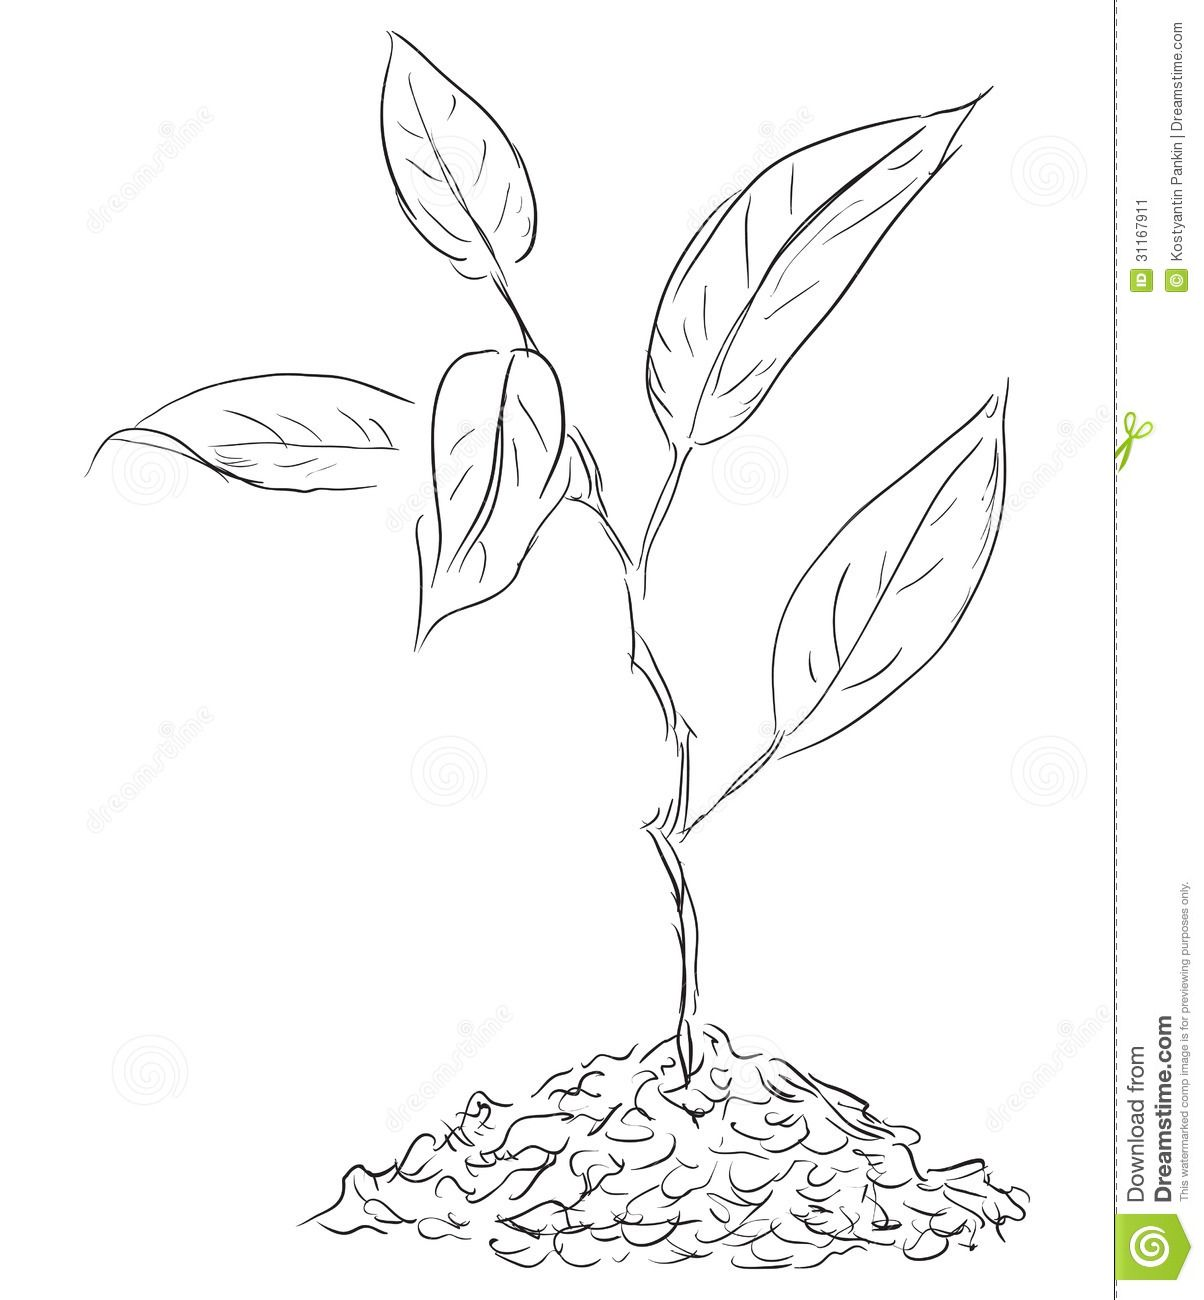 coloring pages seeds soil - photo#17